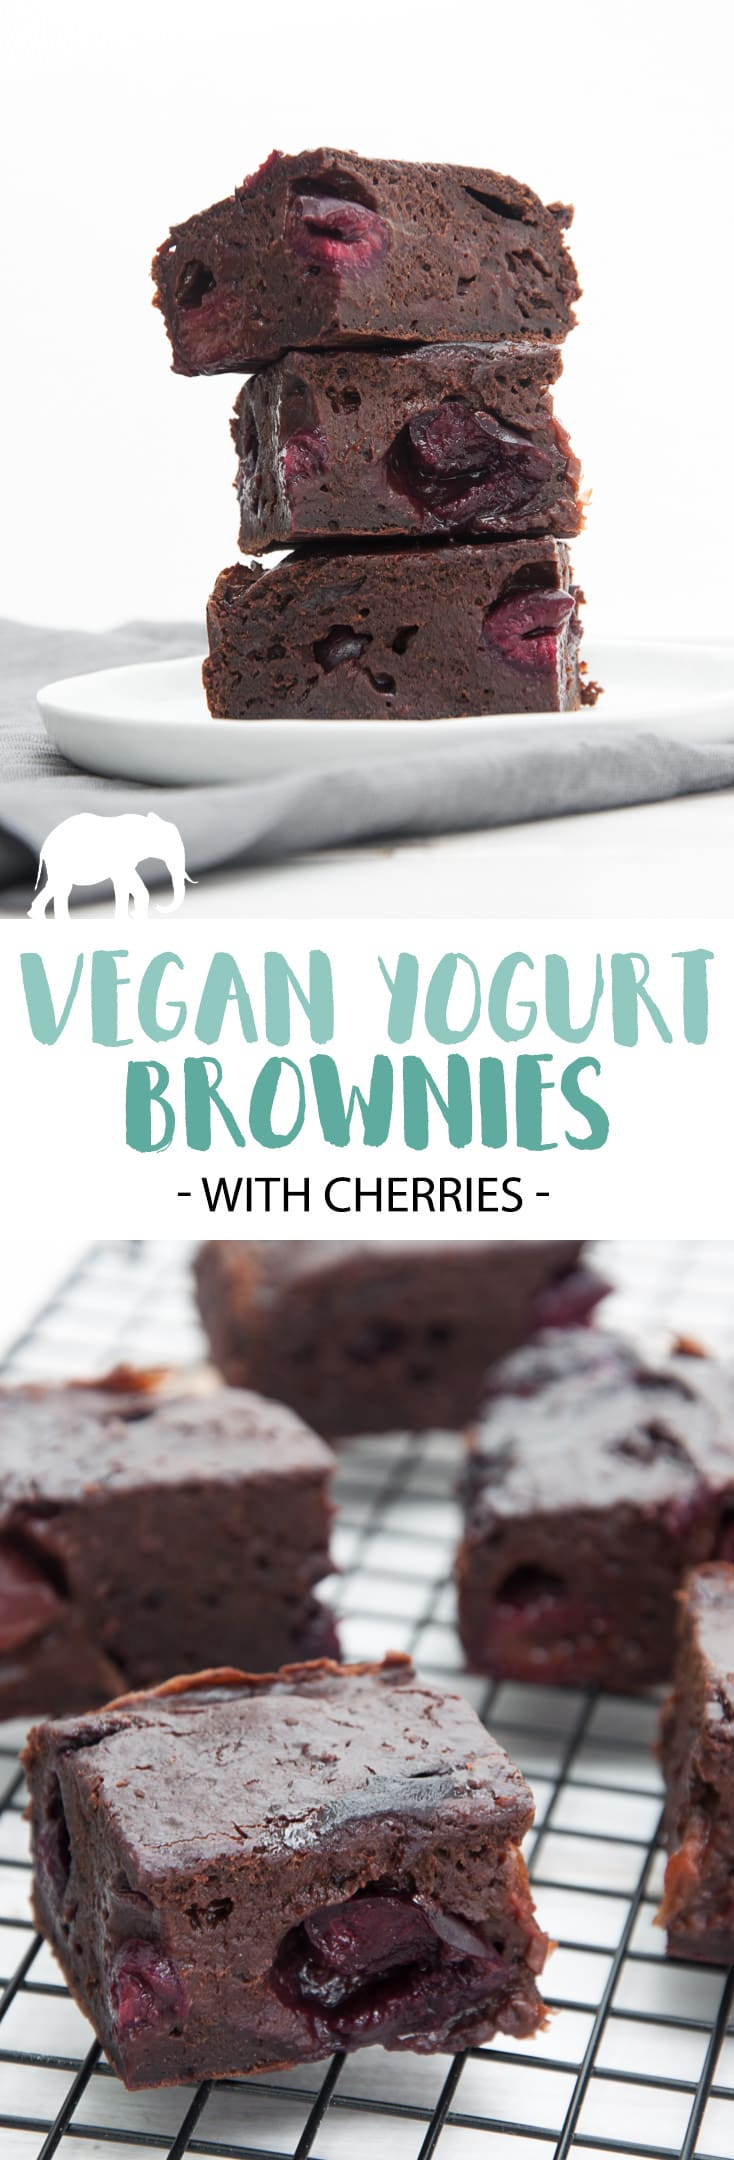 Vegan Yogurt Brownies with Cherries #vegan #brownies #dessert #sweet #plantbased